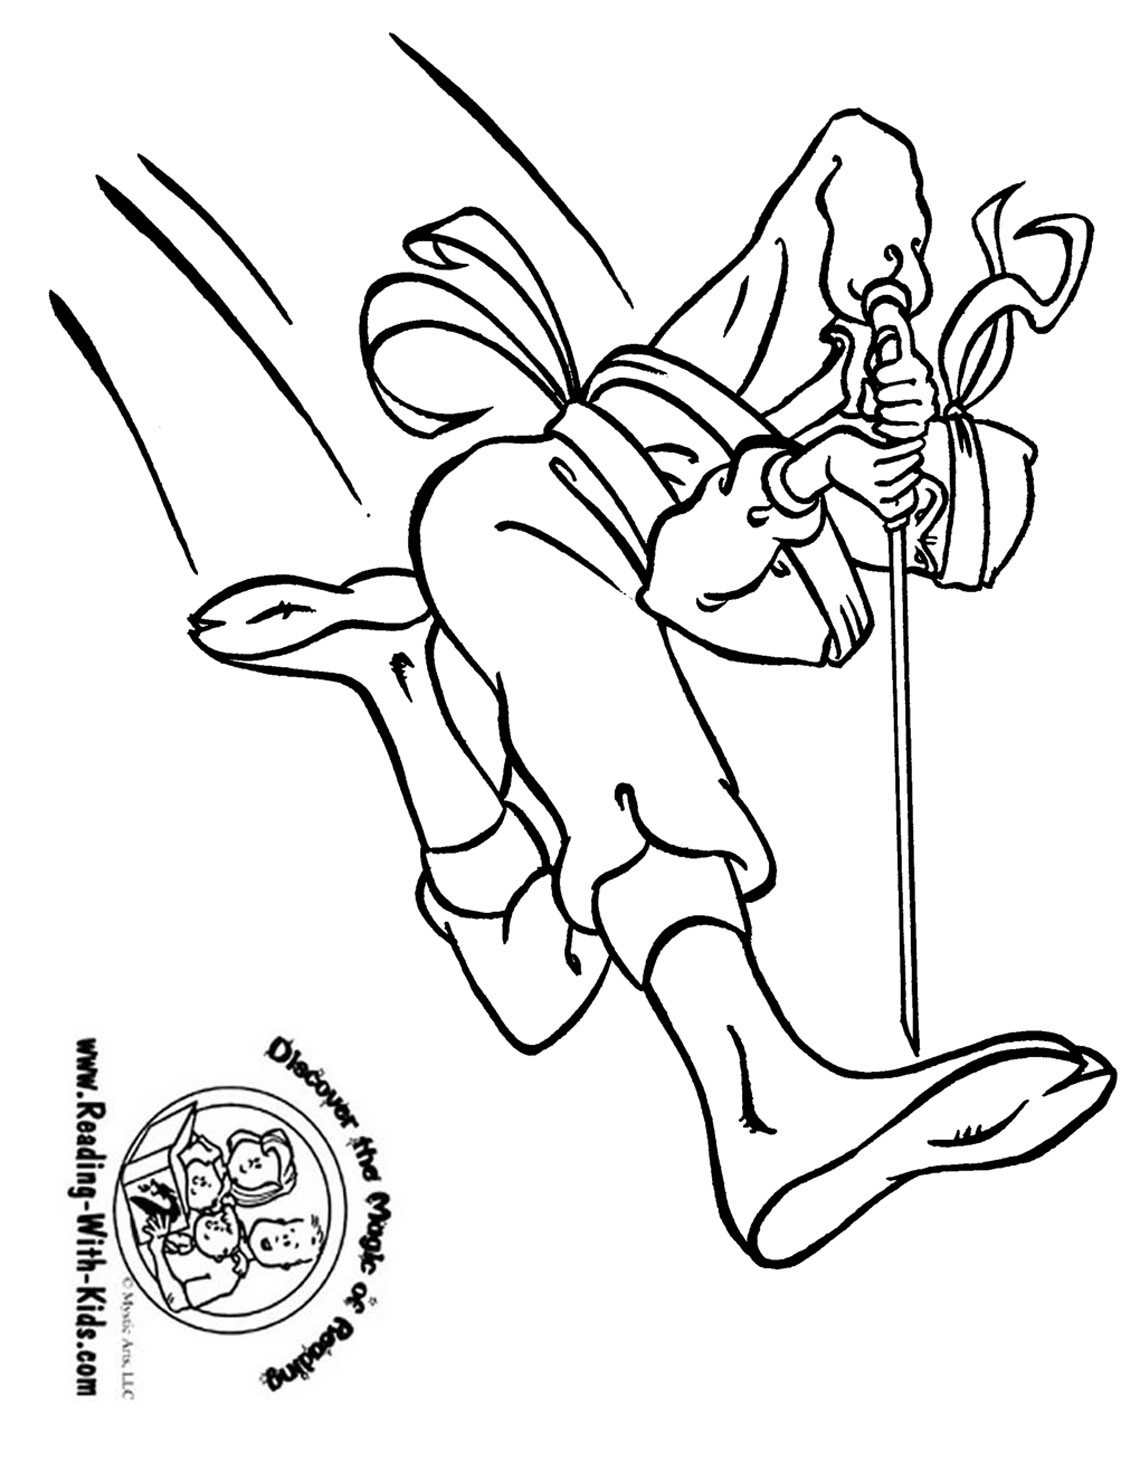 Free coloring pages for reading -  Cowboy Coloring Page Ninja Coloring Page